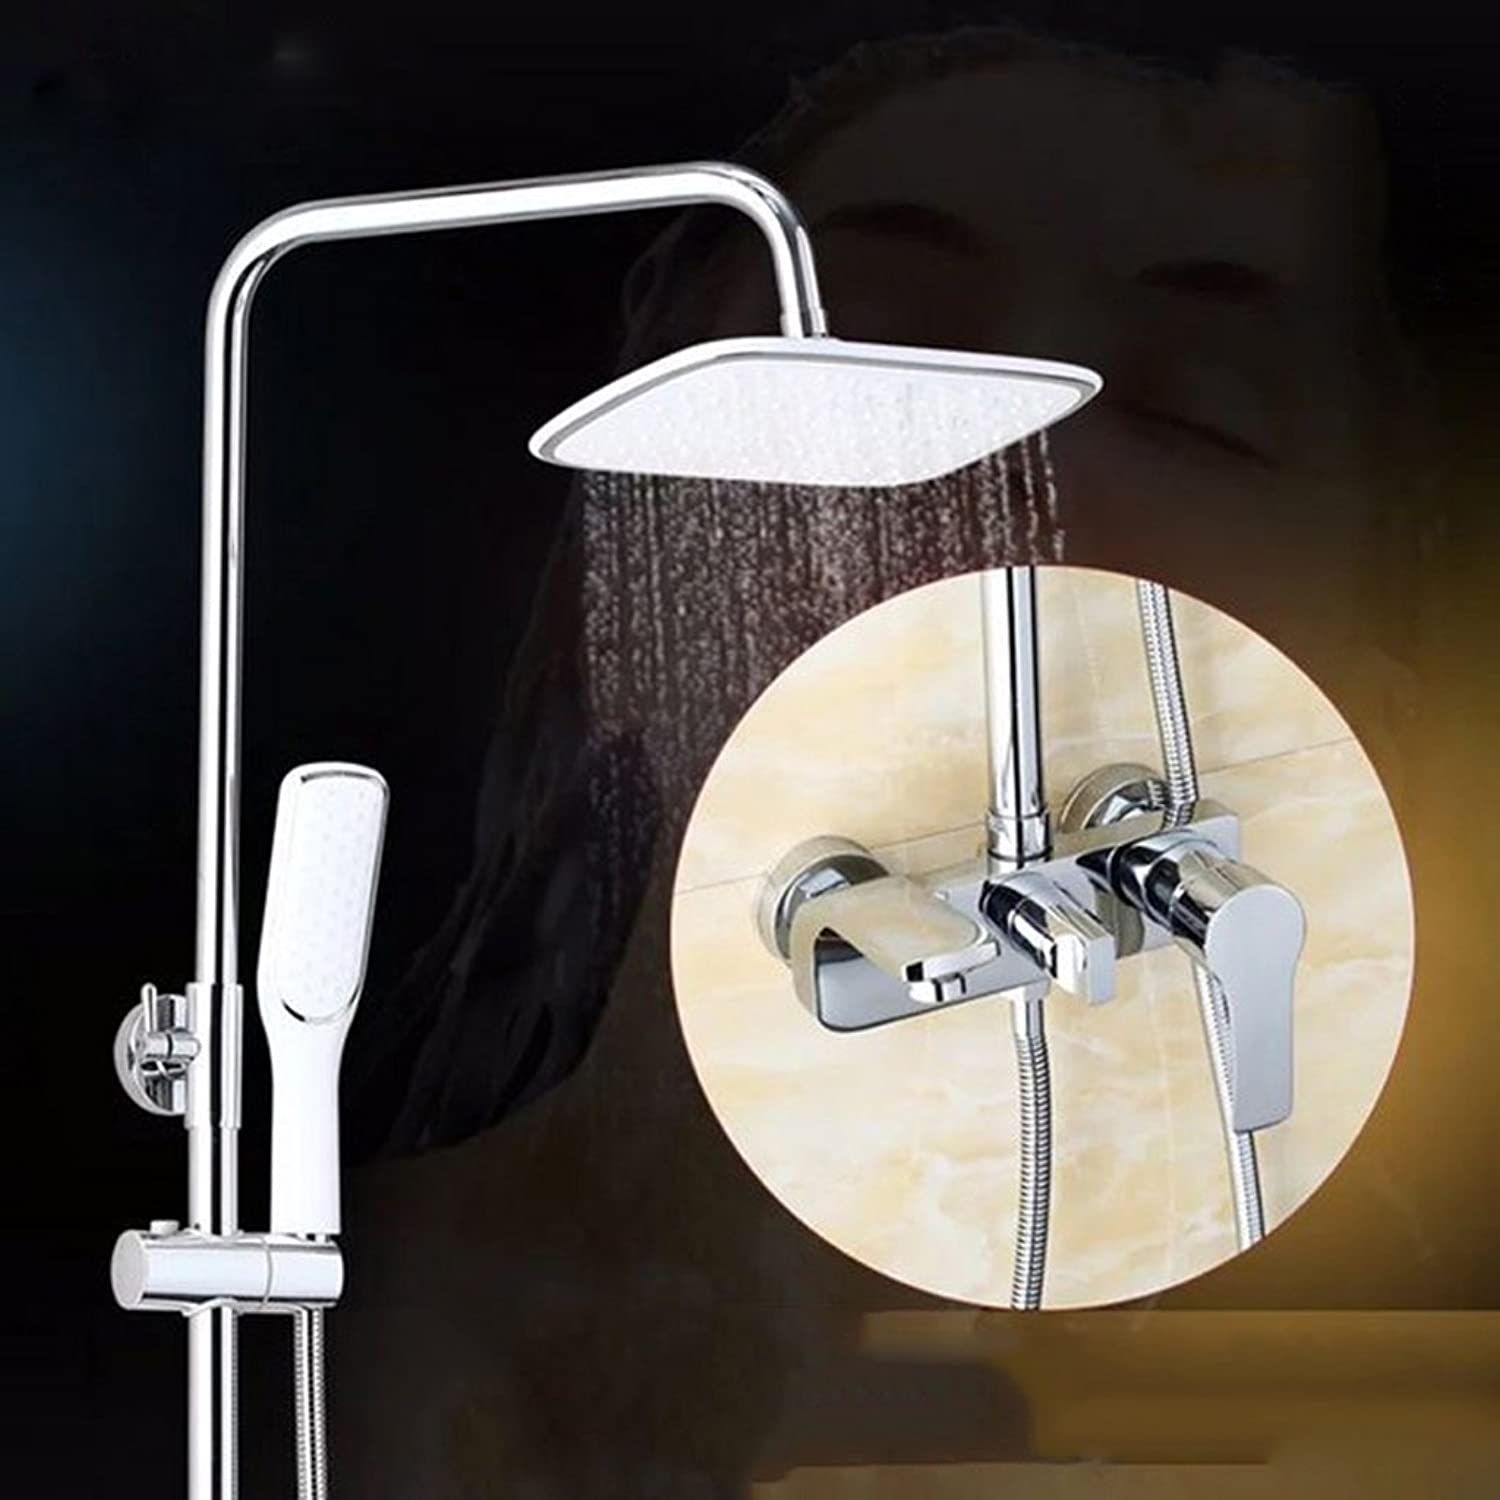 Duschsysteme-sam Li@ Hand Shower with Shower Set Copper Hot and Cold Water Heater Nozzle Wall-Mounted Shower Set, Can Lift Up and Down (Farbe   Silber)